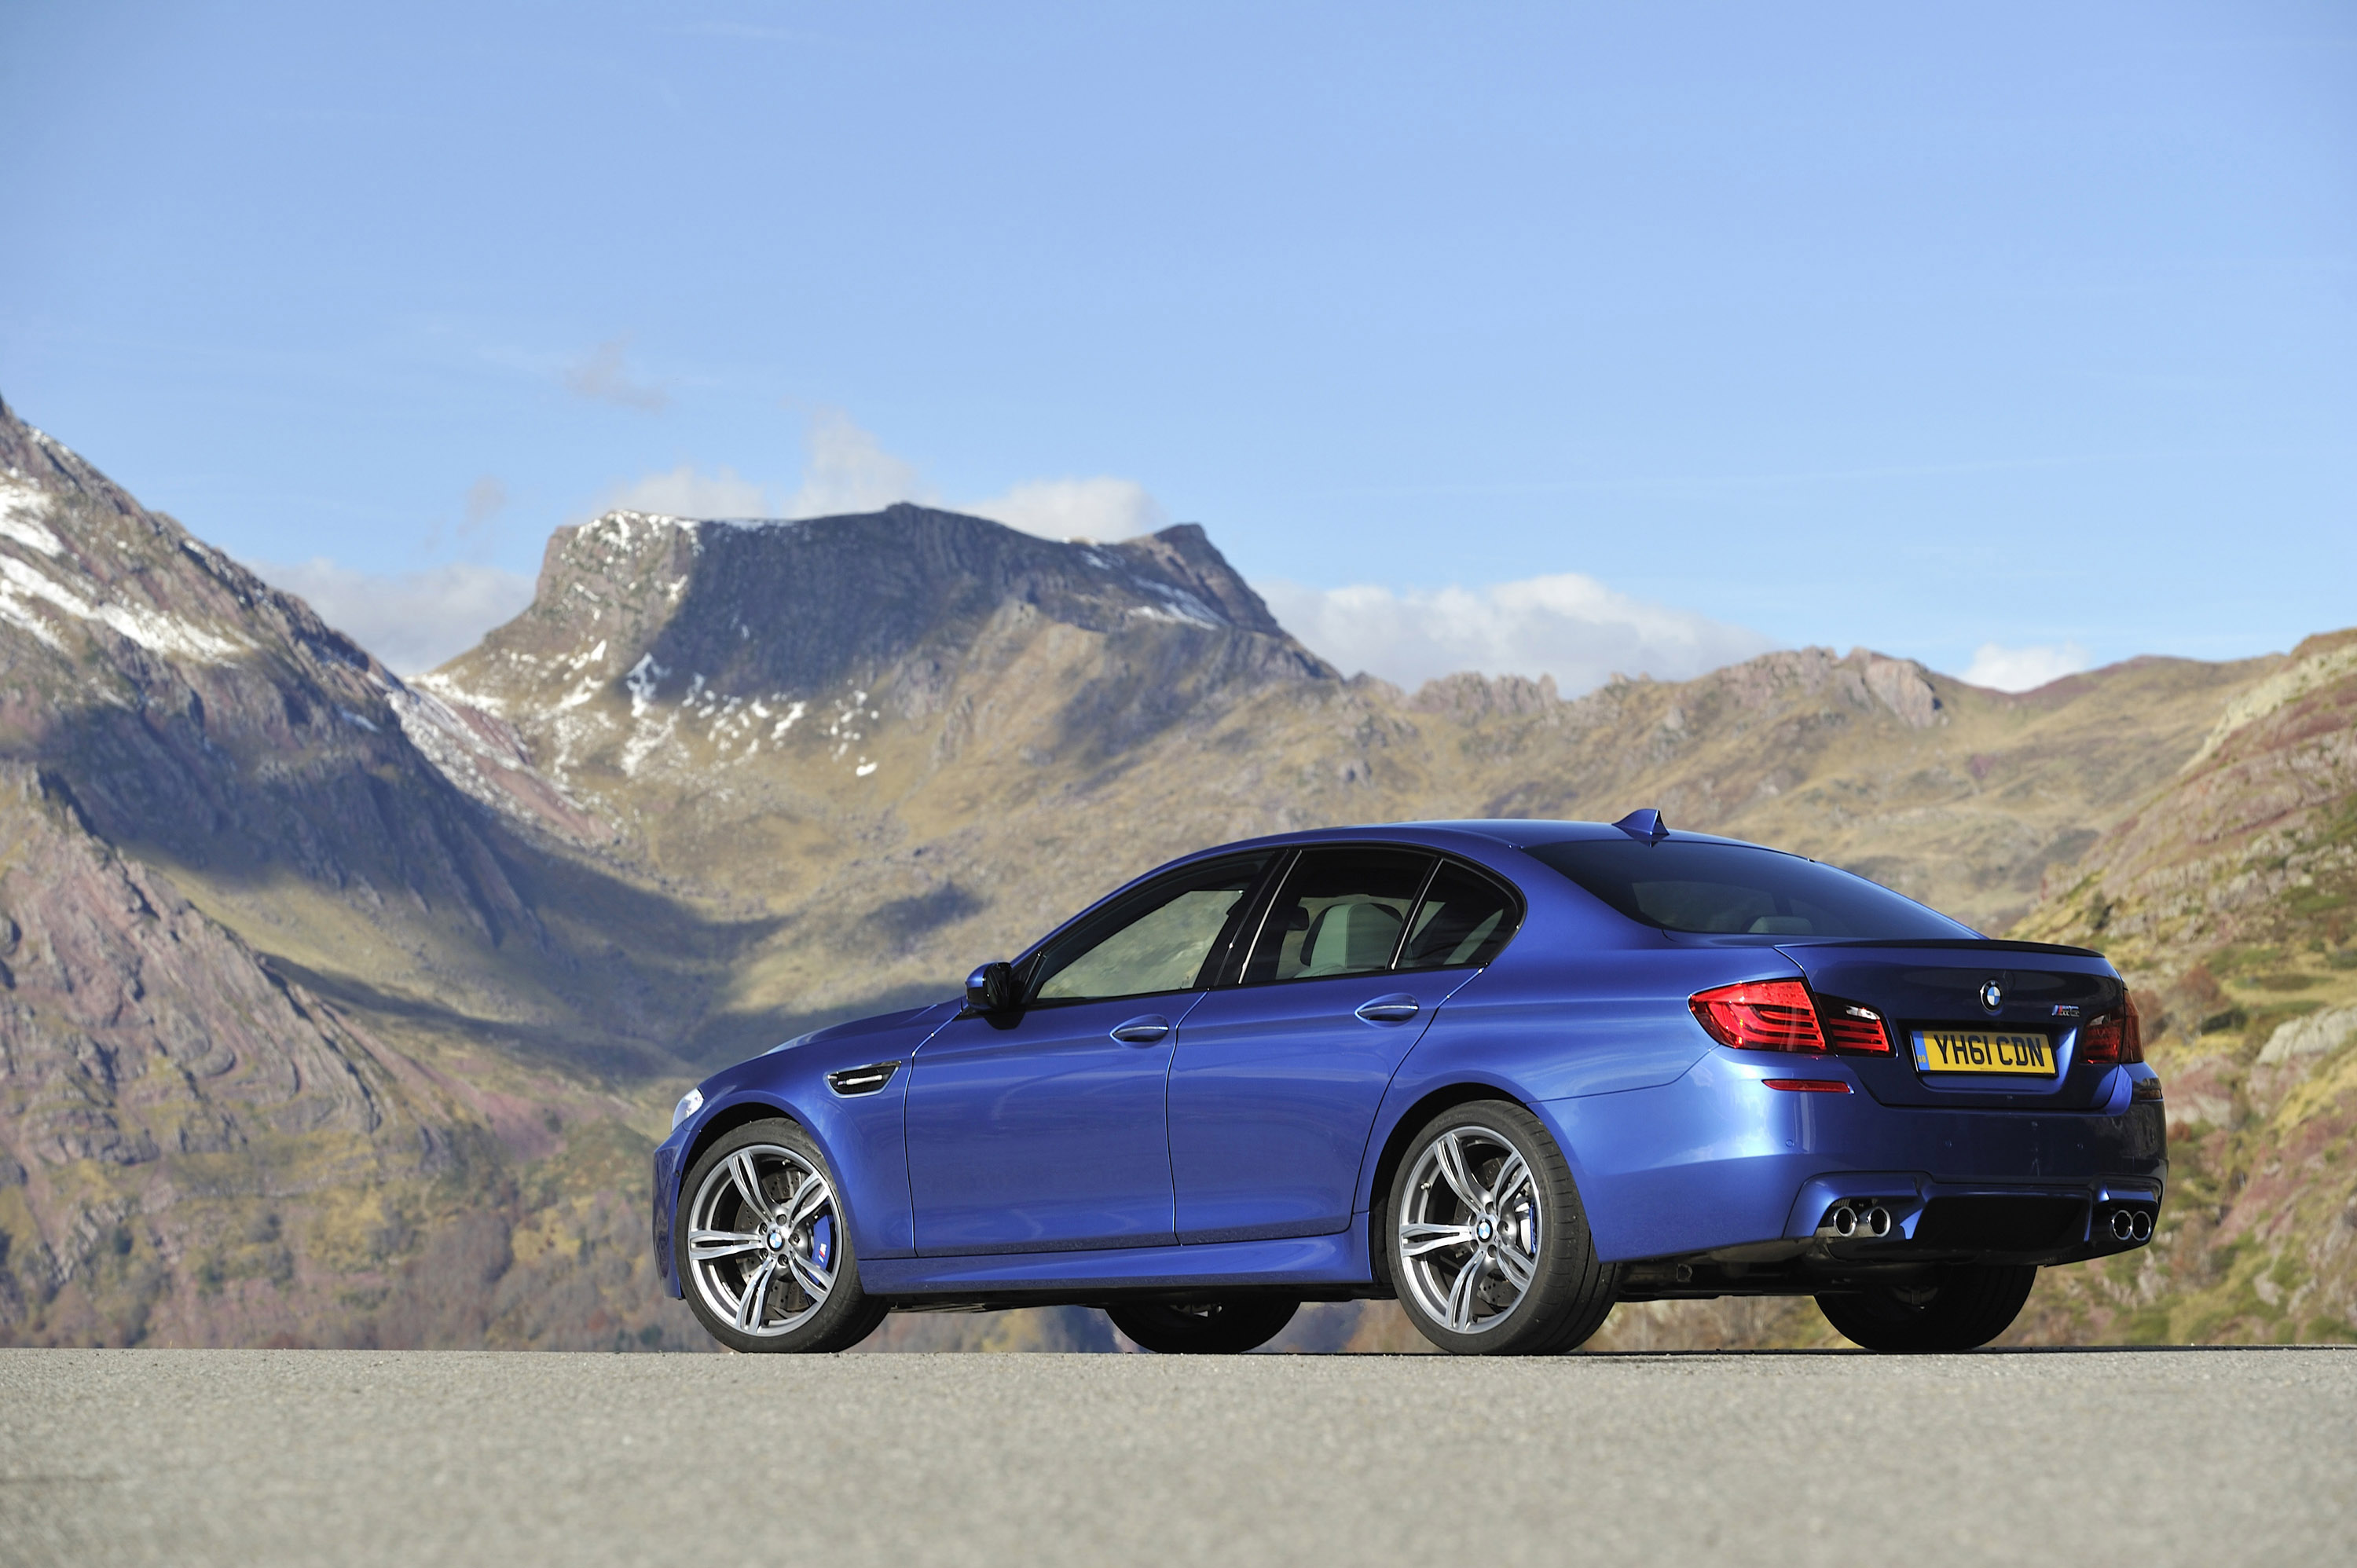 2012 BMW F10 M5 Saloon UK - Picture 60738